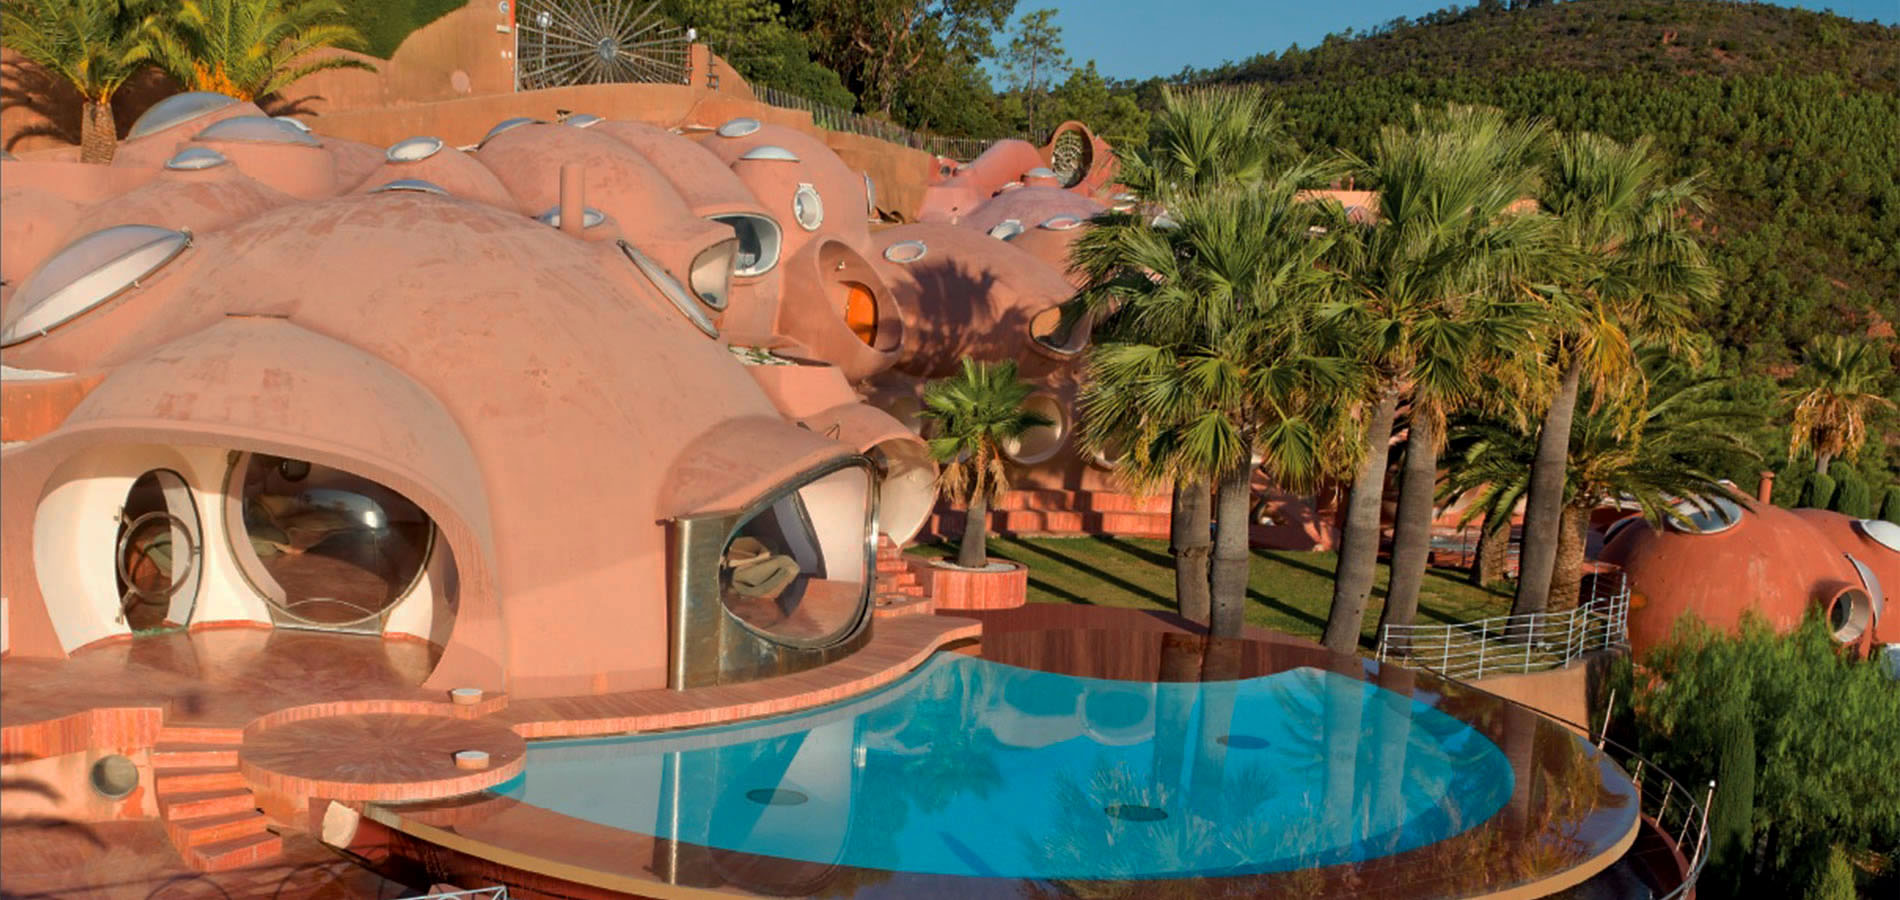 Exterior pool of the Palais Bulles